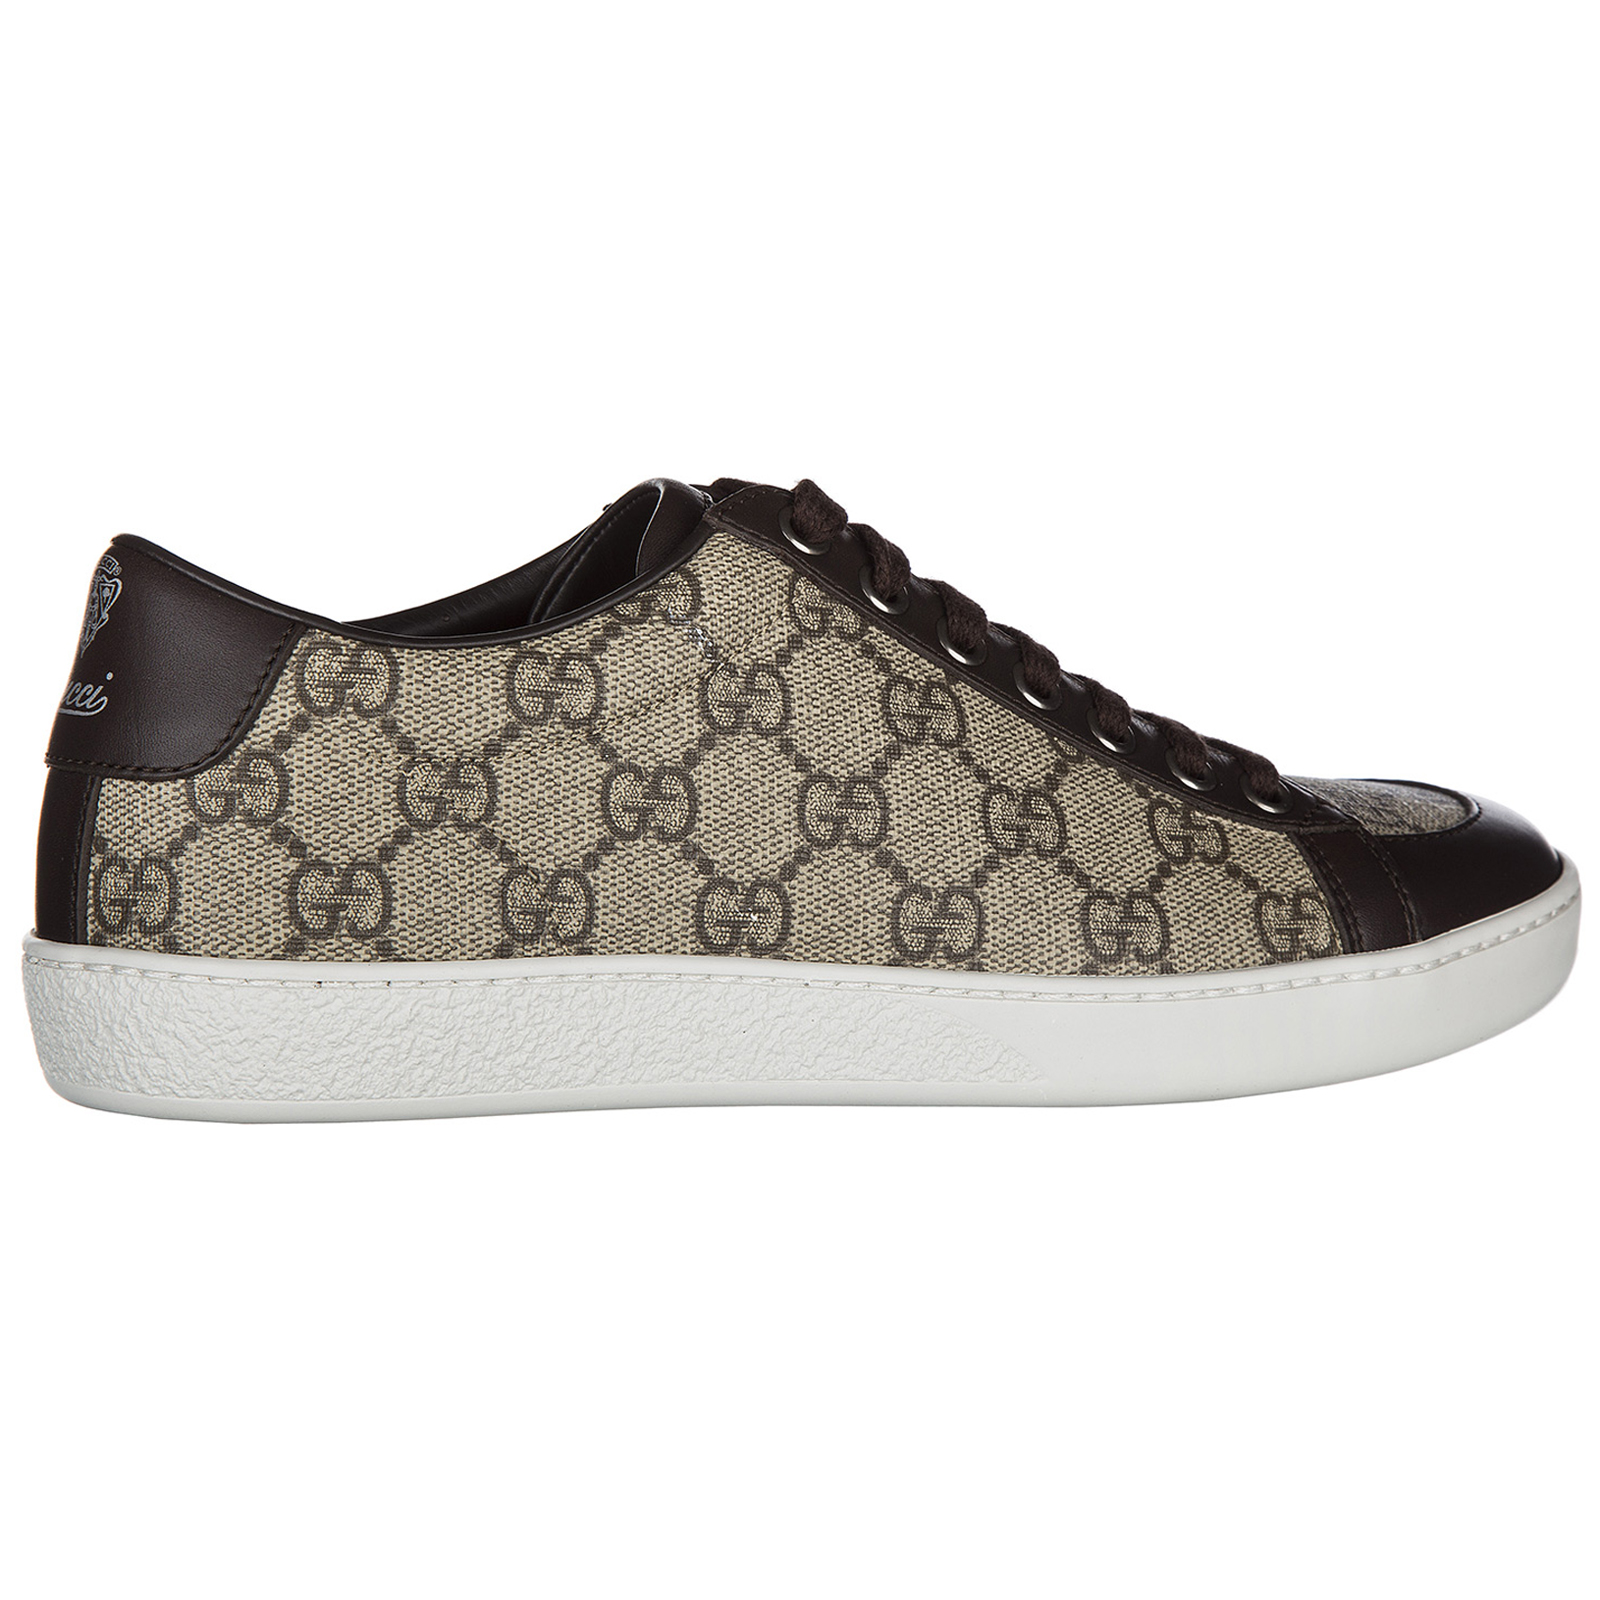 5304be40c3c Gucci Women s shoes trainers sneakers gg supreme brooklyn